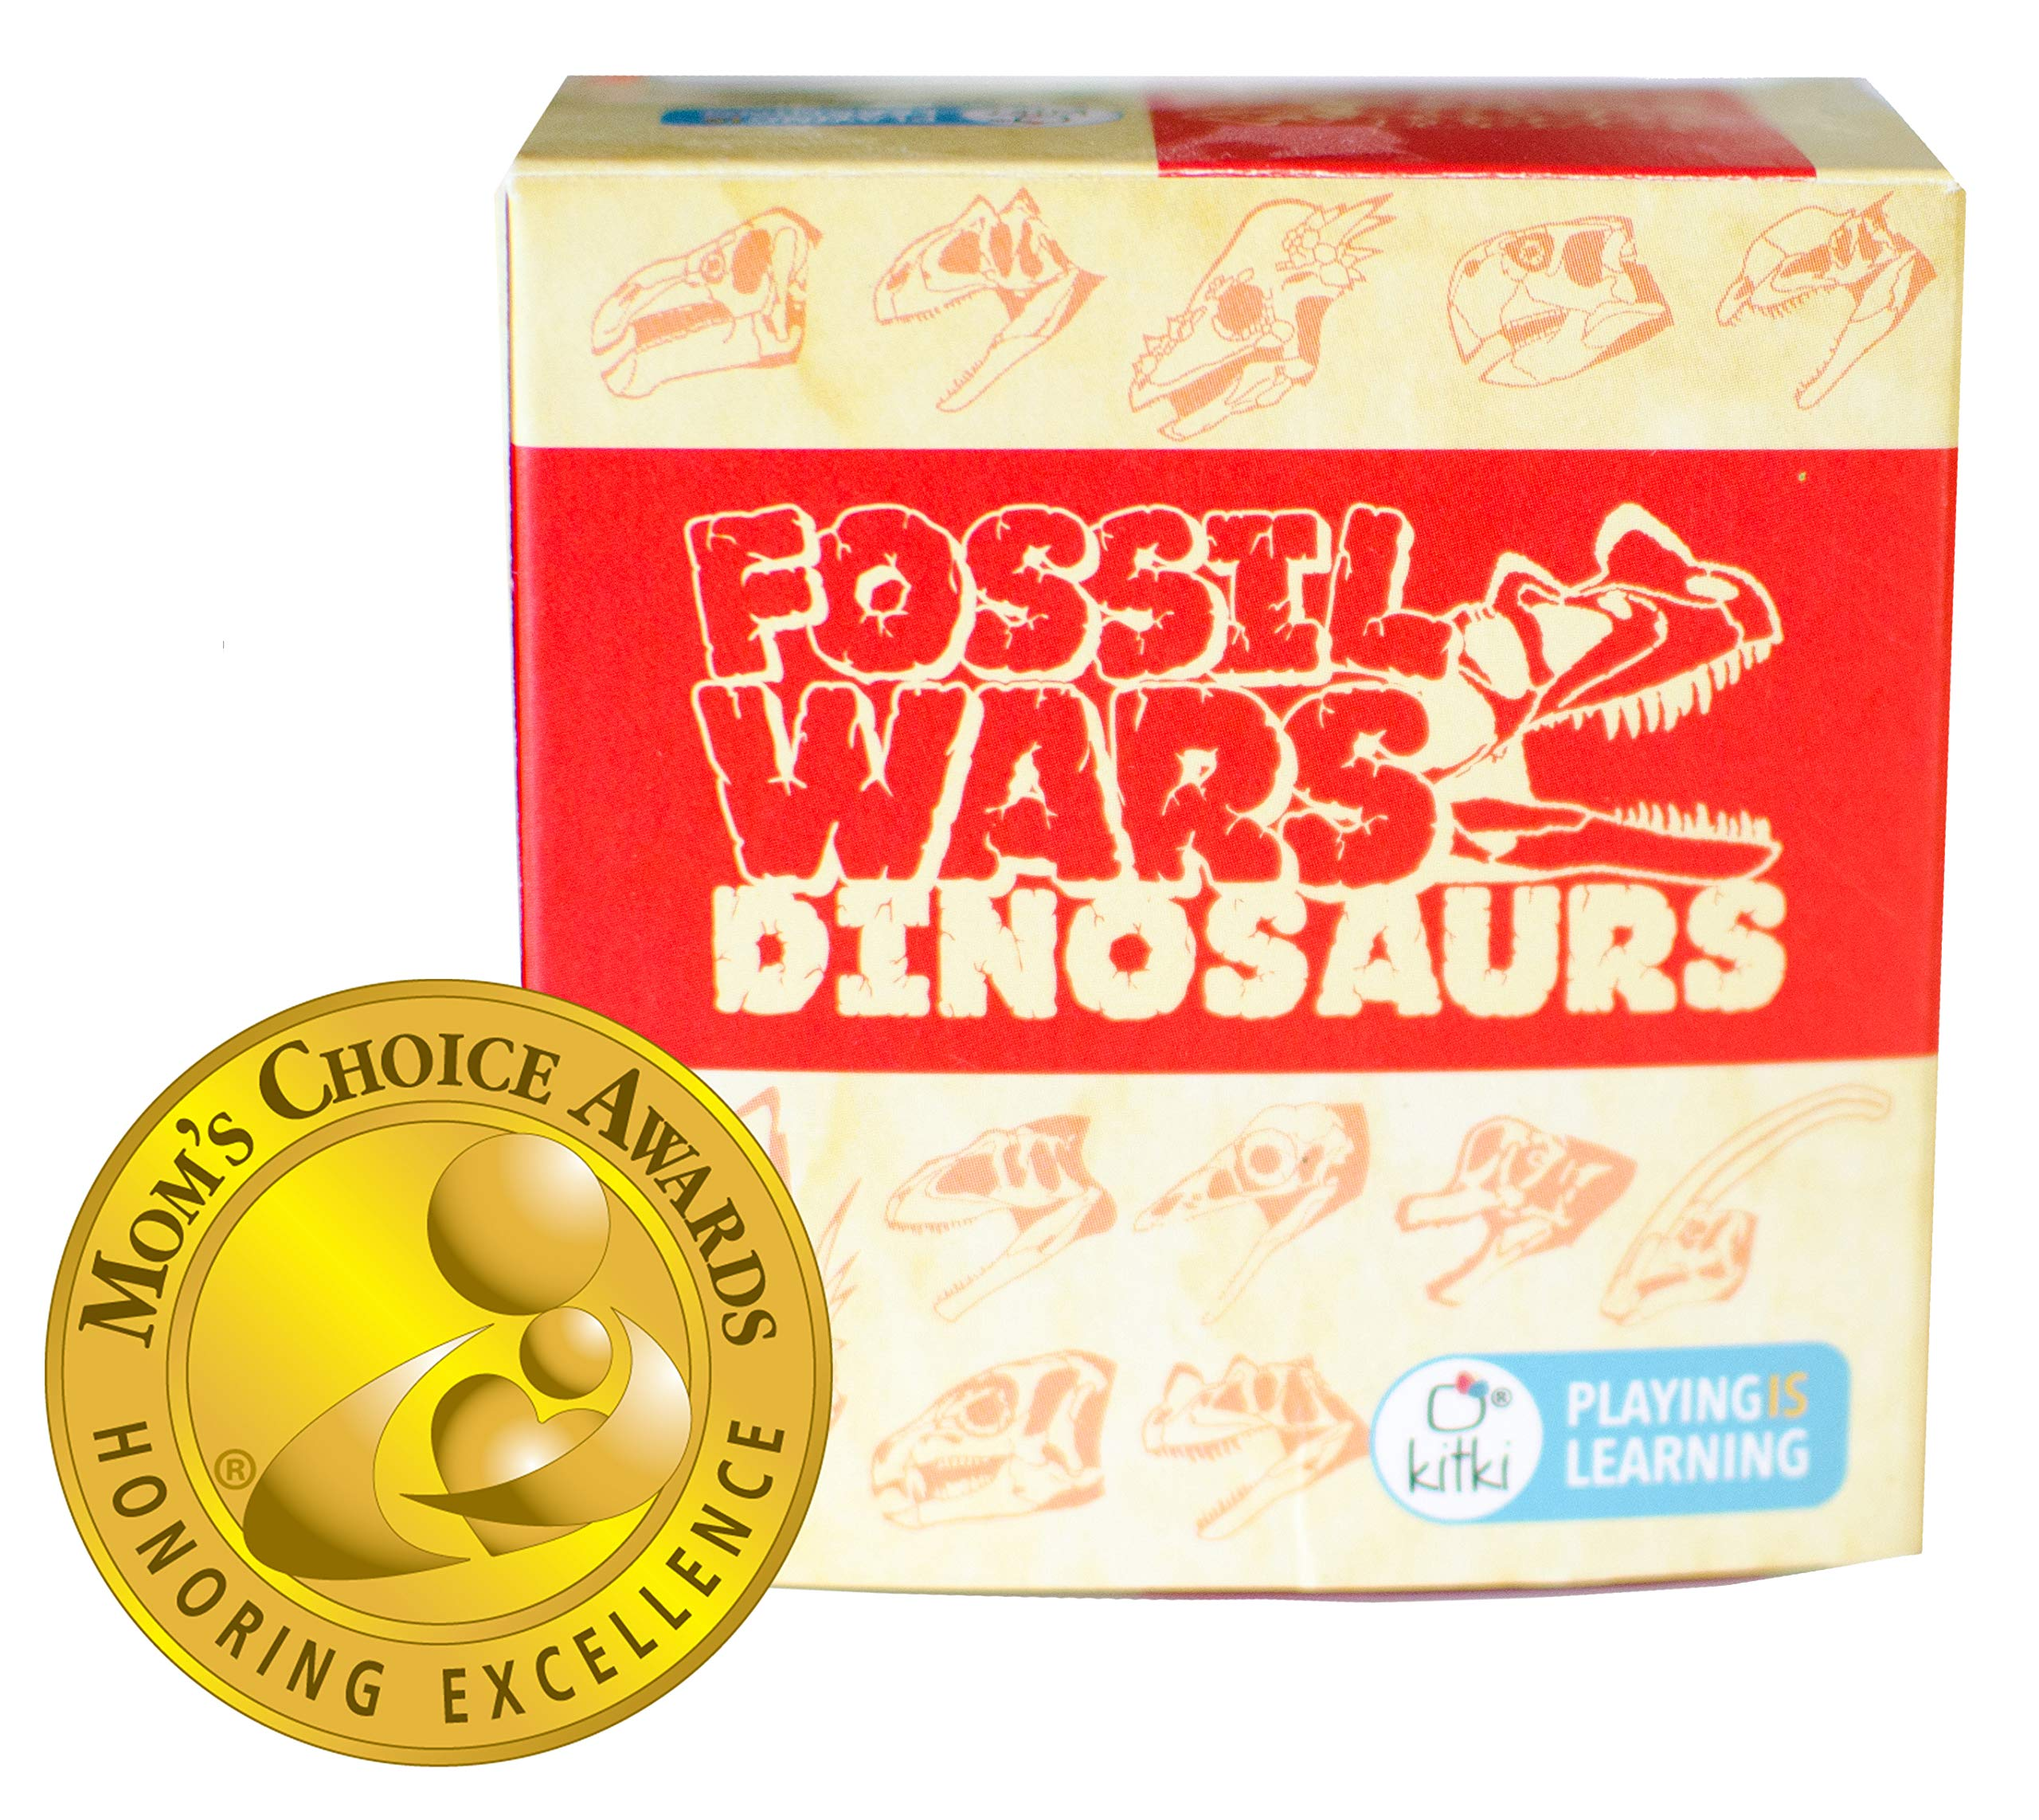 Kitki Plastic Fossil Wars Dinosaurs Game Stem Science Trivia Toy for Kids of Ages 8 and Up, Multicolour, For Kids of Ages 8 and Up